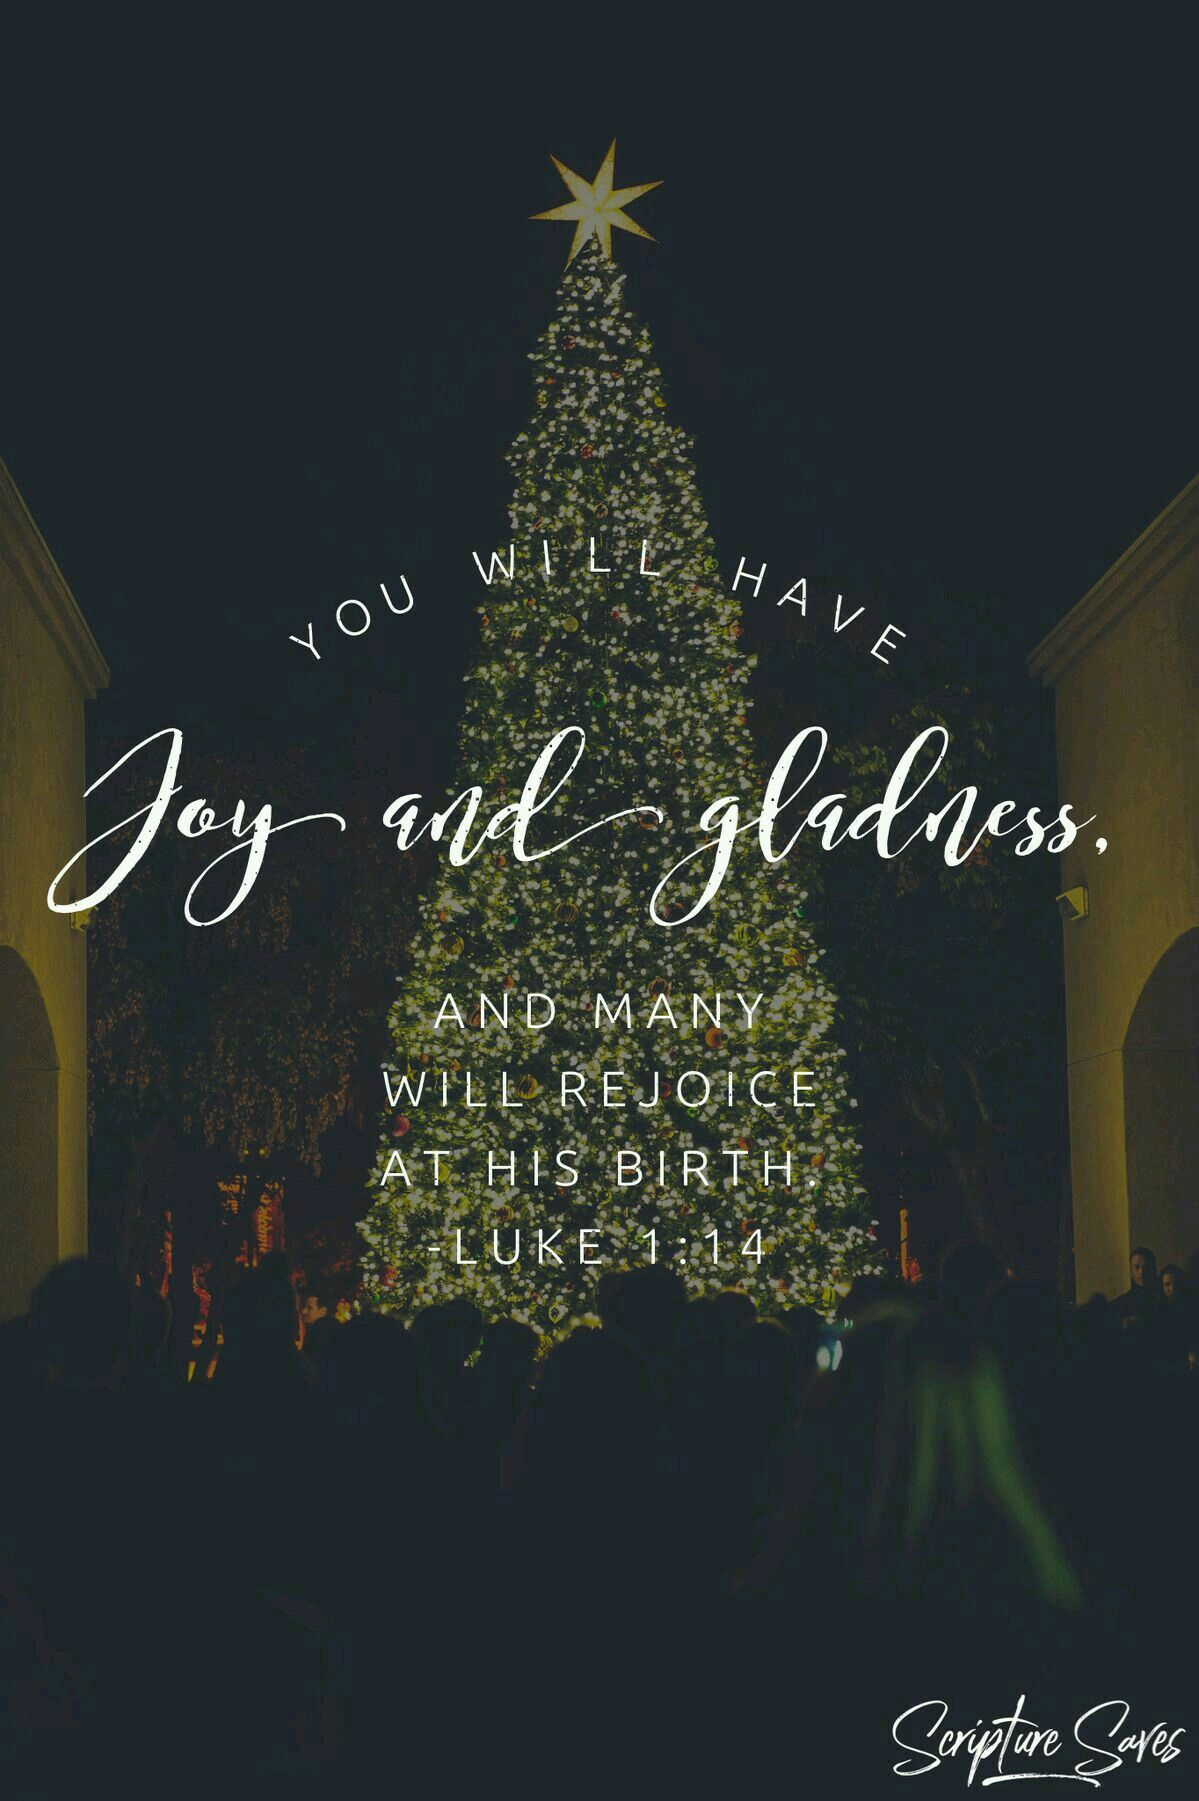 Pin By Tammy Reedy Strader On Christian 1 Christmas Scripture Christmas Quotes Scripture Quotes